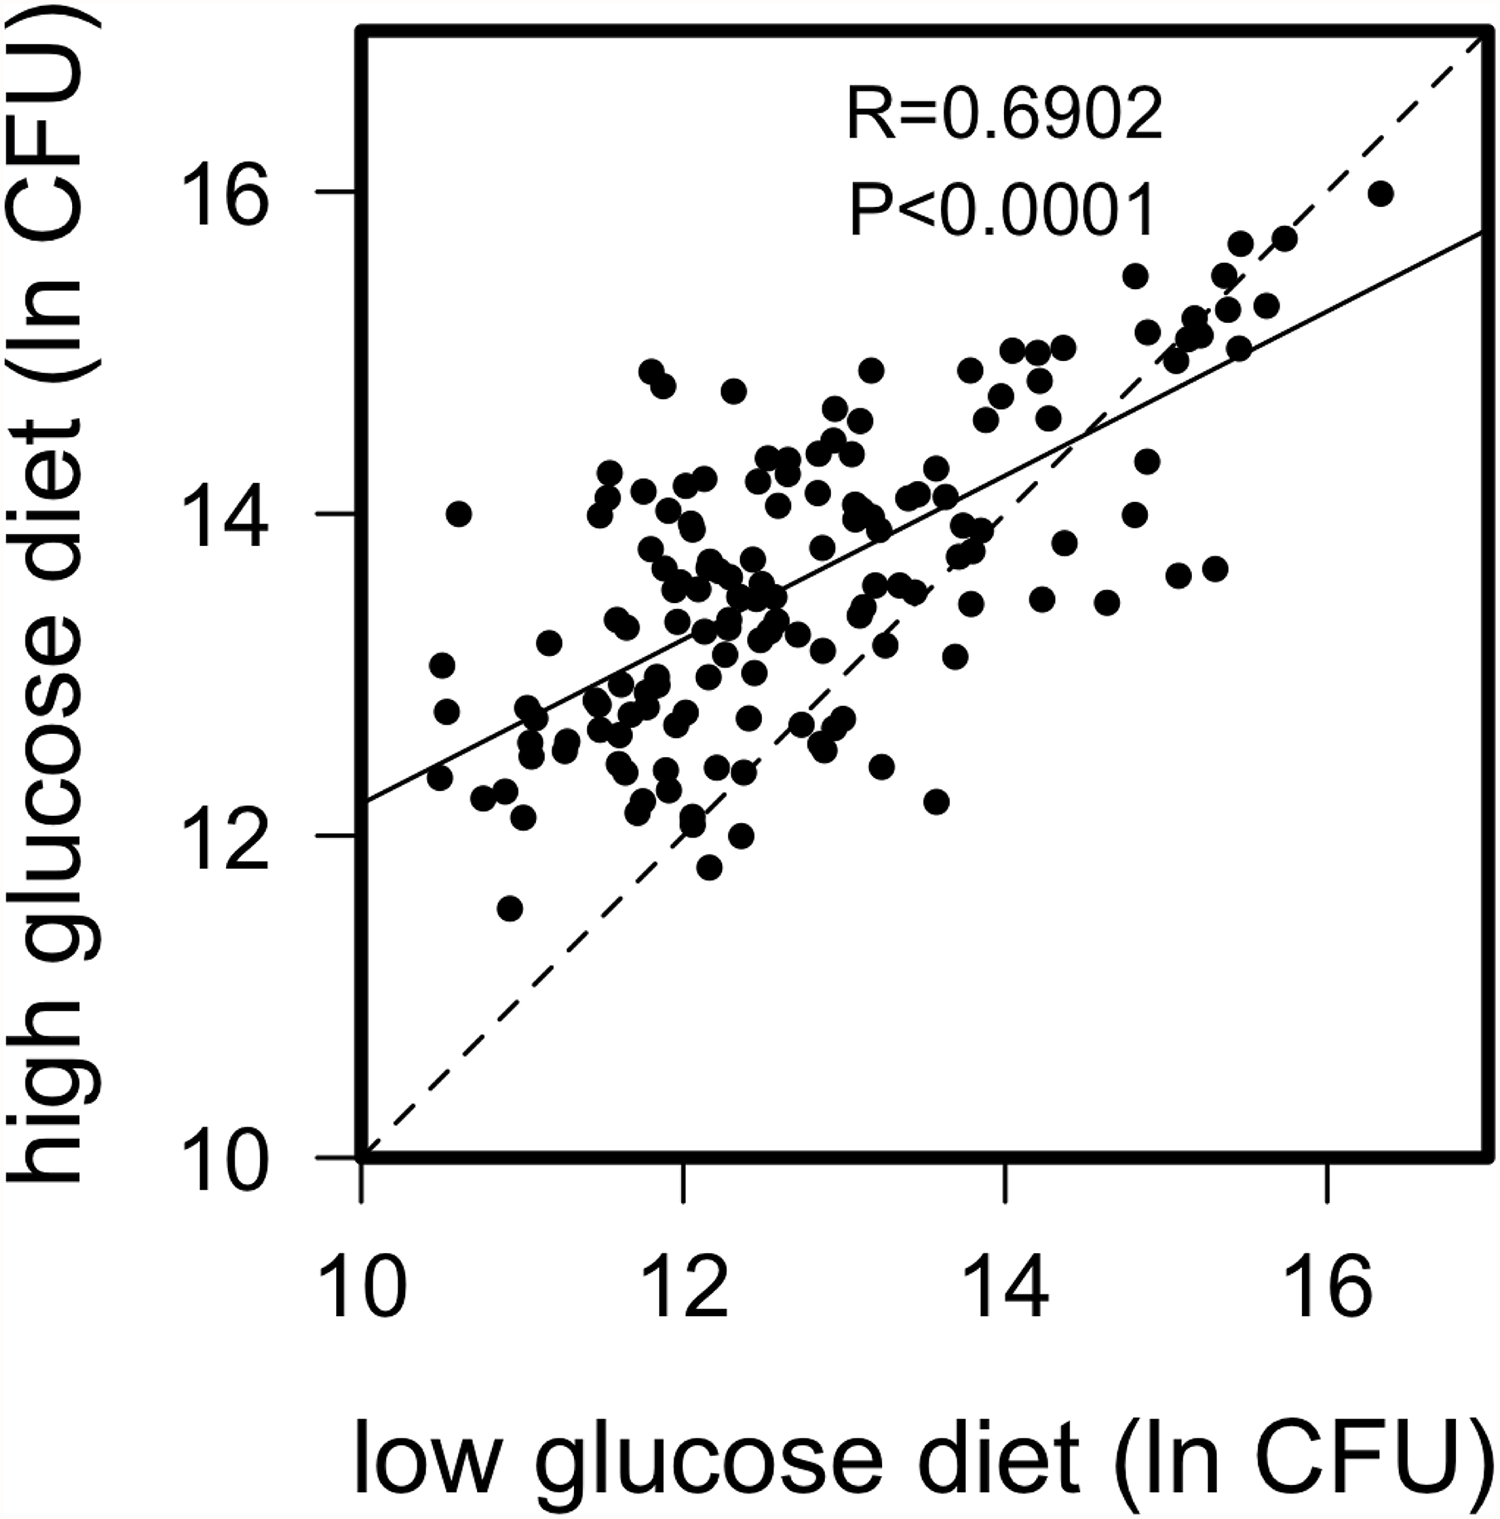 Correlation of natural log bacterial load (CFU) 24-hours post infection for DGRP lines raised on high glucose and low glucose diets.